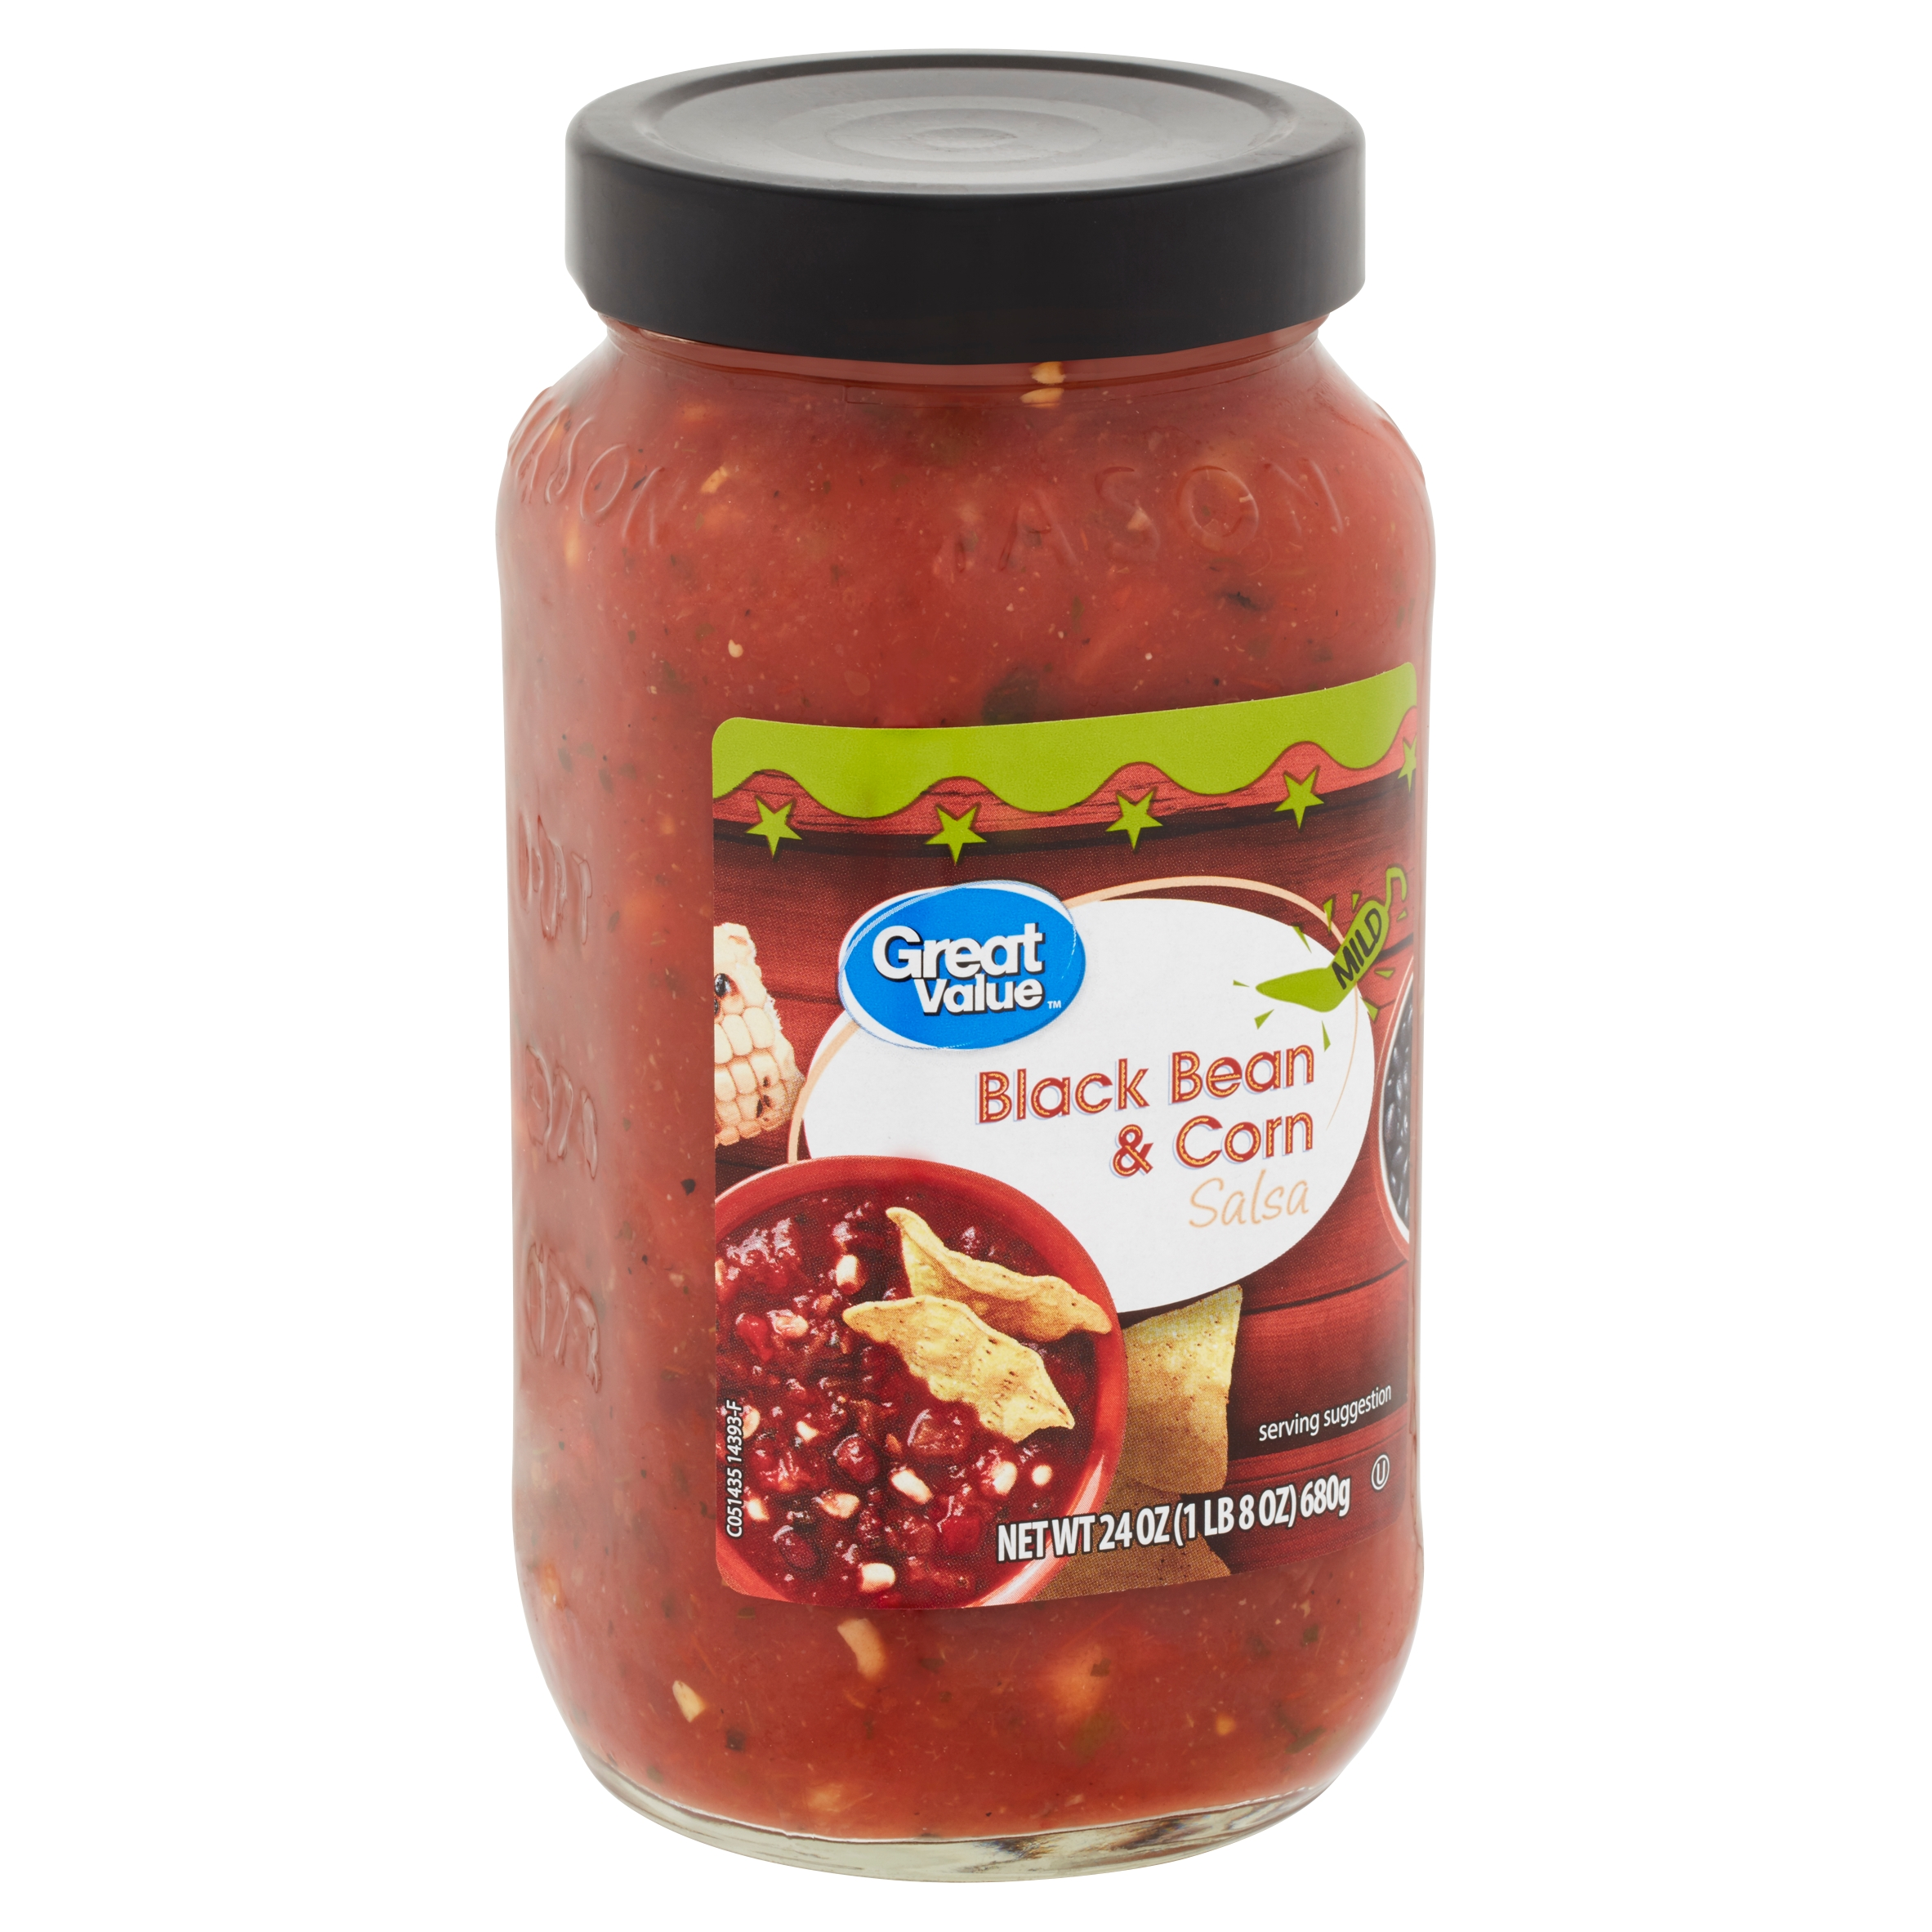 Great Value Mild Black Bean & Corn Salsa, 24 oz